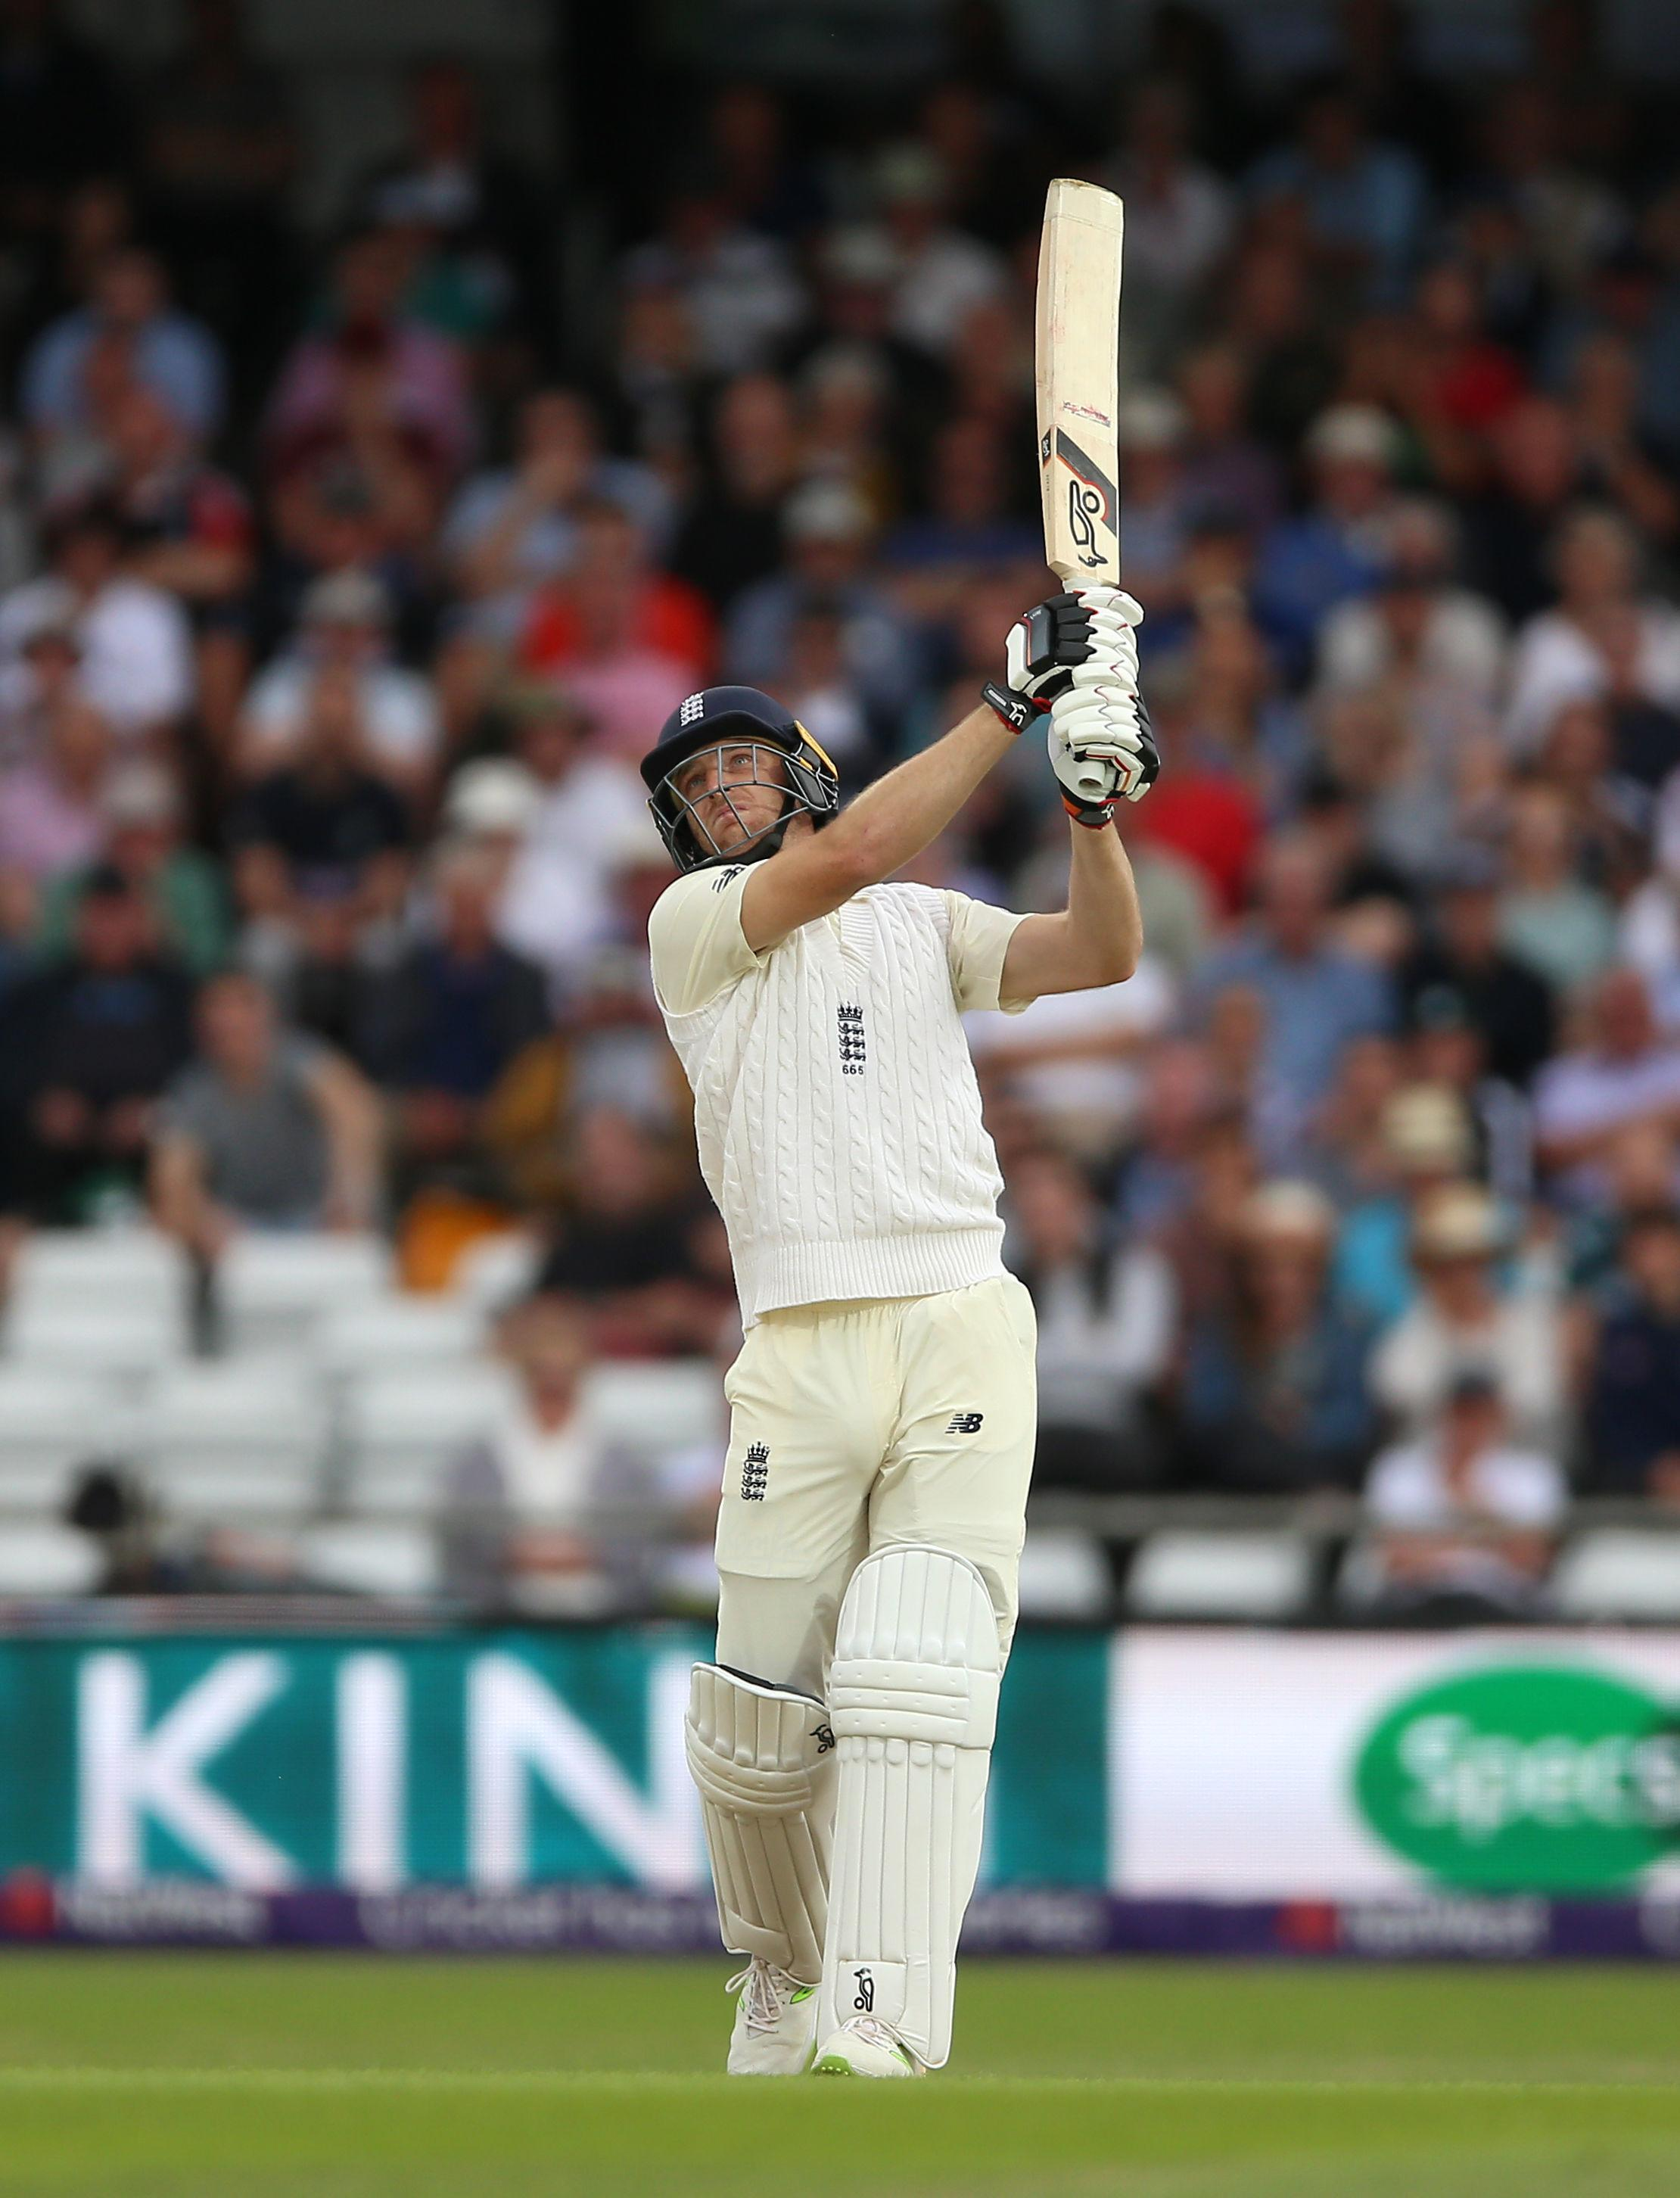 Jos Buttler had earlier whacked a devastating 80 not out in England's innings